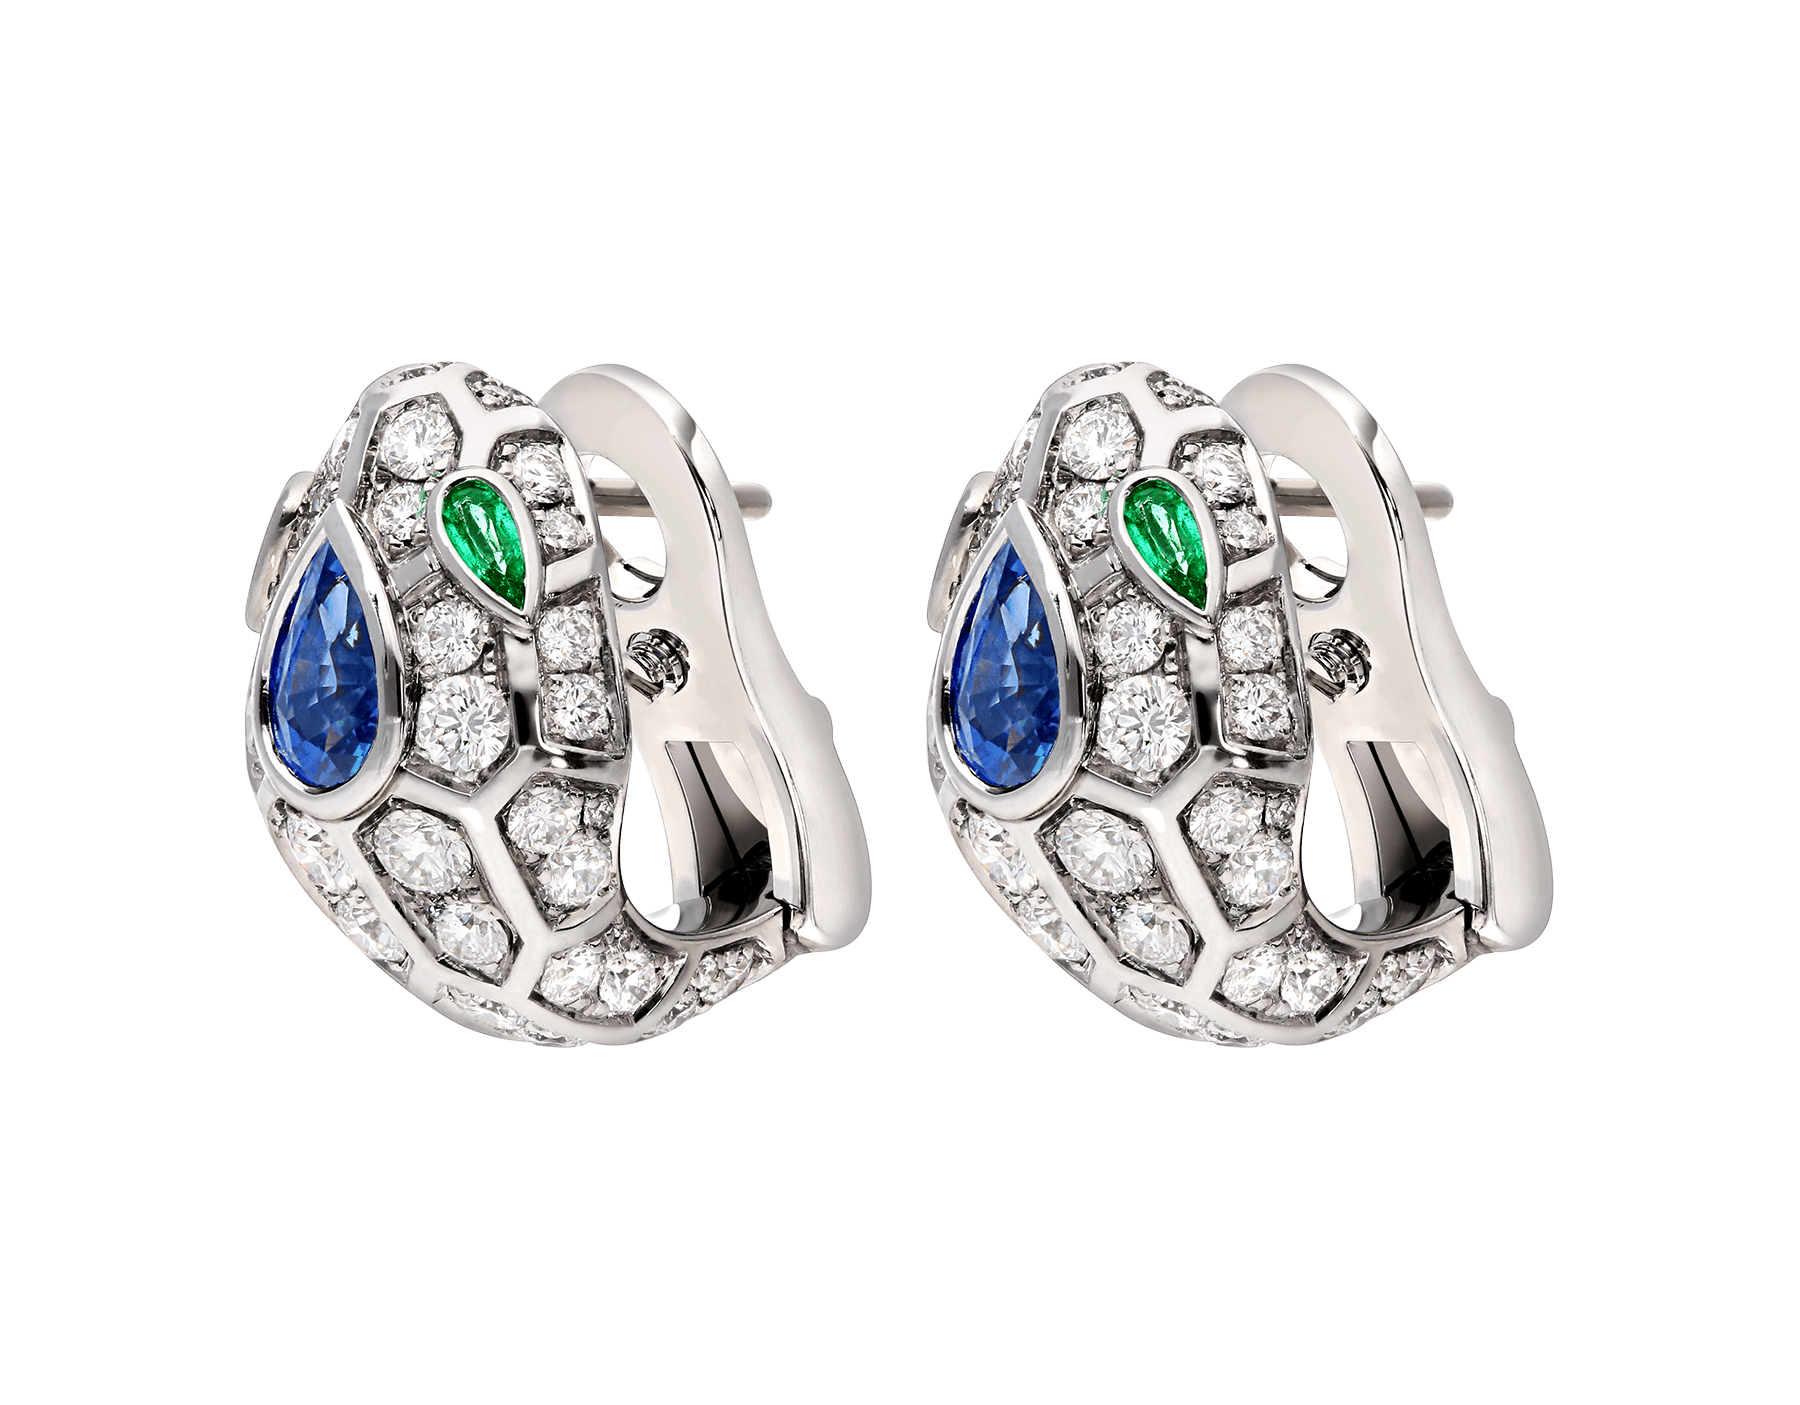 Serpenti 18 kt white gold earrings set with a blue sapphire on the head, emerald eyes and pavé diamonds 355355 image 2